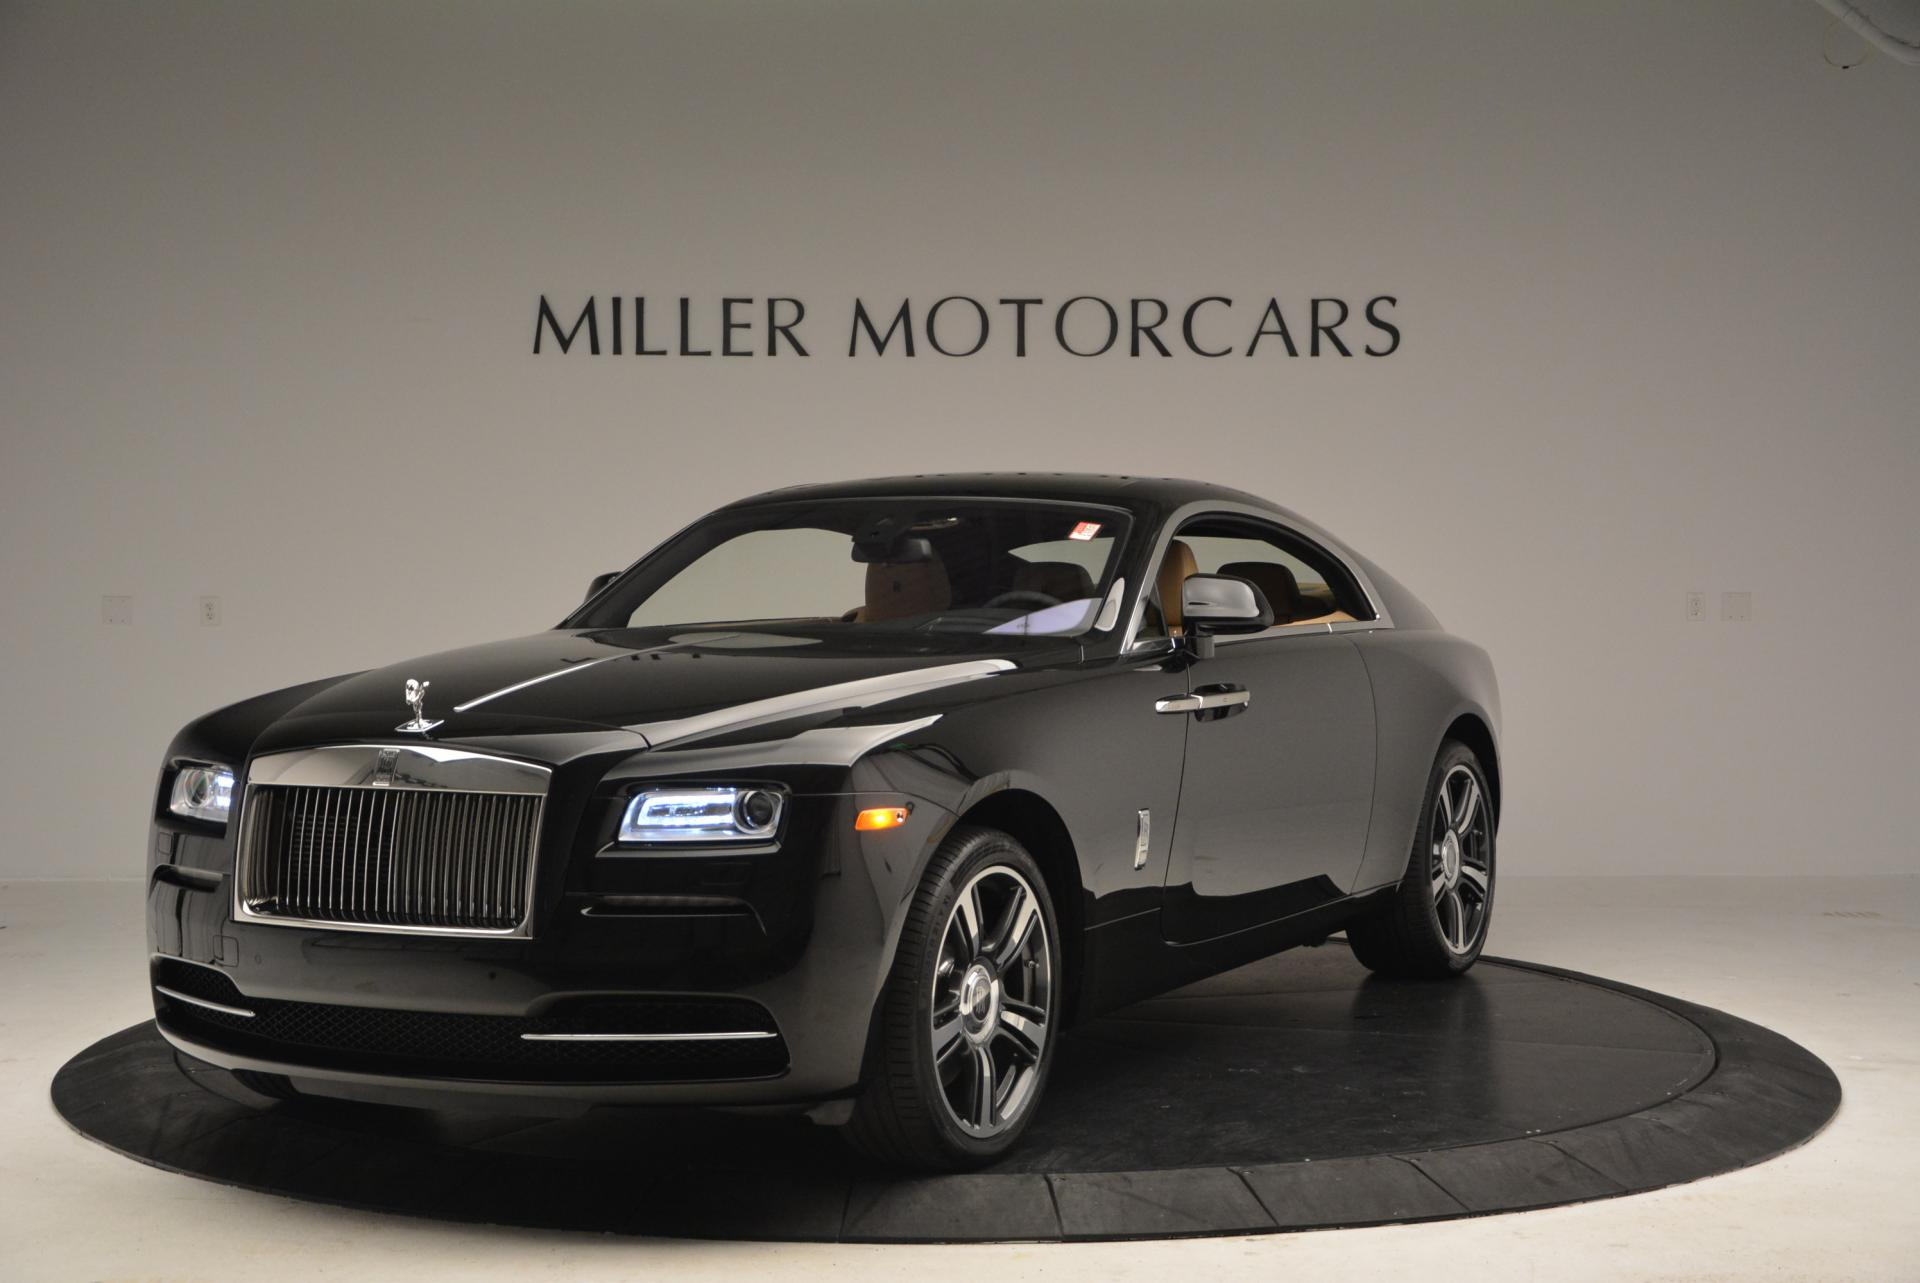 New 2016 Rolls-Royce Wraith for sale Sold at Bentley Greenwich in Greenwich CT 06830 1